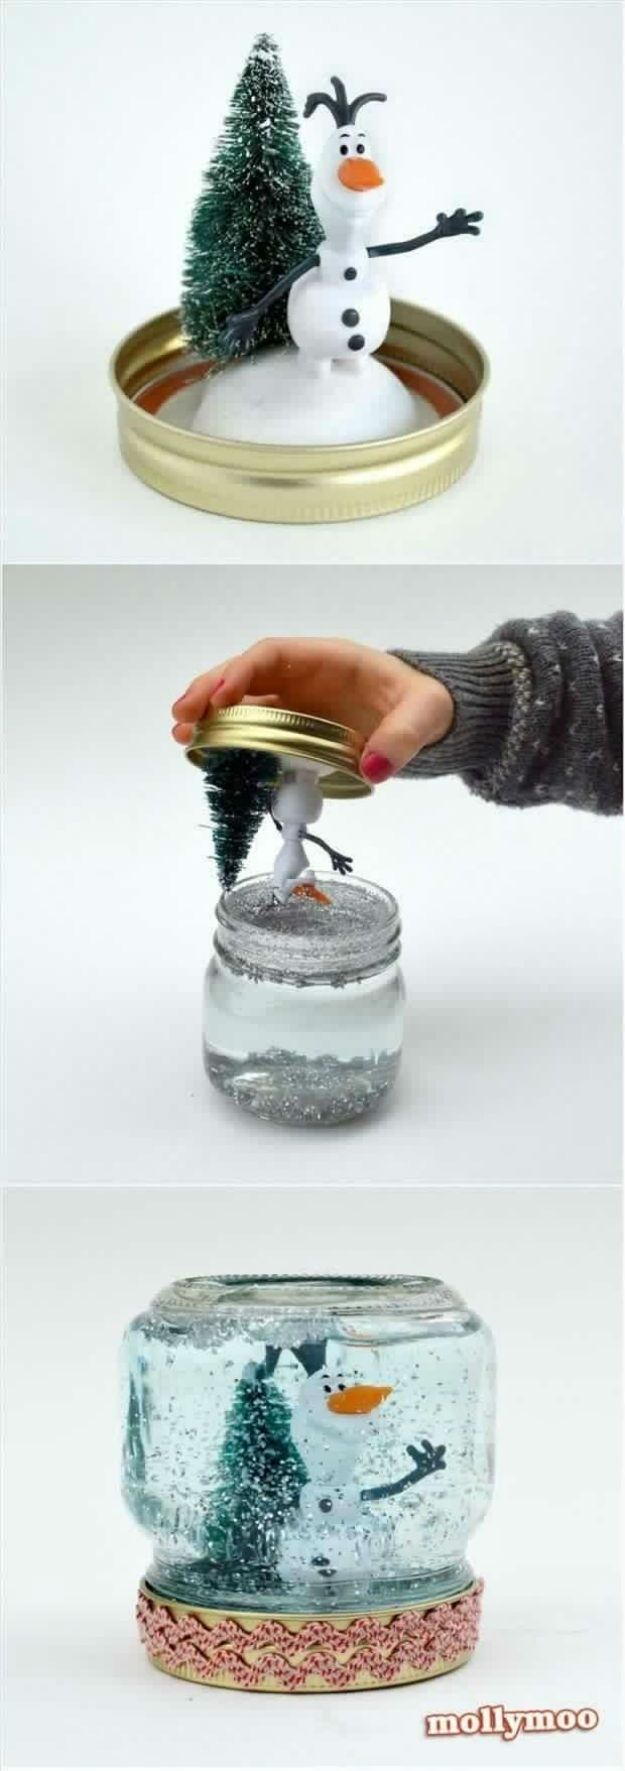 DIY Christmas Gifts for Friends and Family! DIY Snow Globe | http://diyready.com/60-cute-and-easy-diy-gifts-in-a-jar-christmas-gift-ideas/